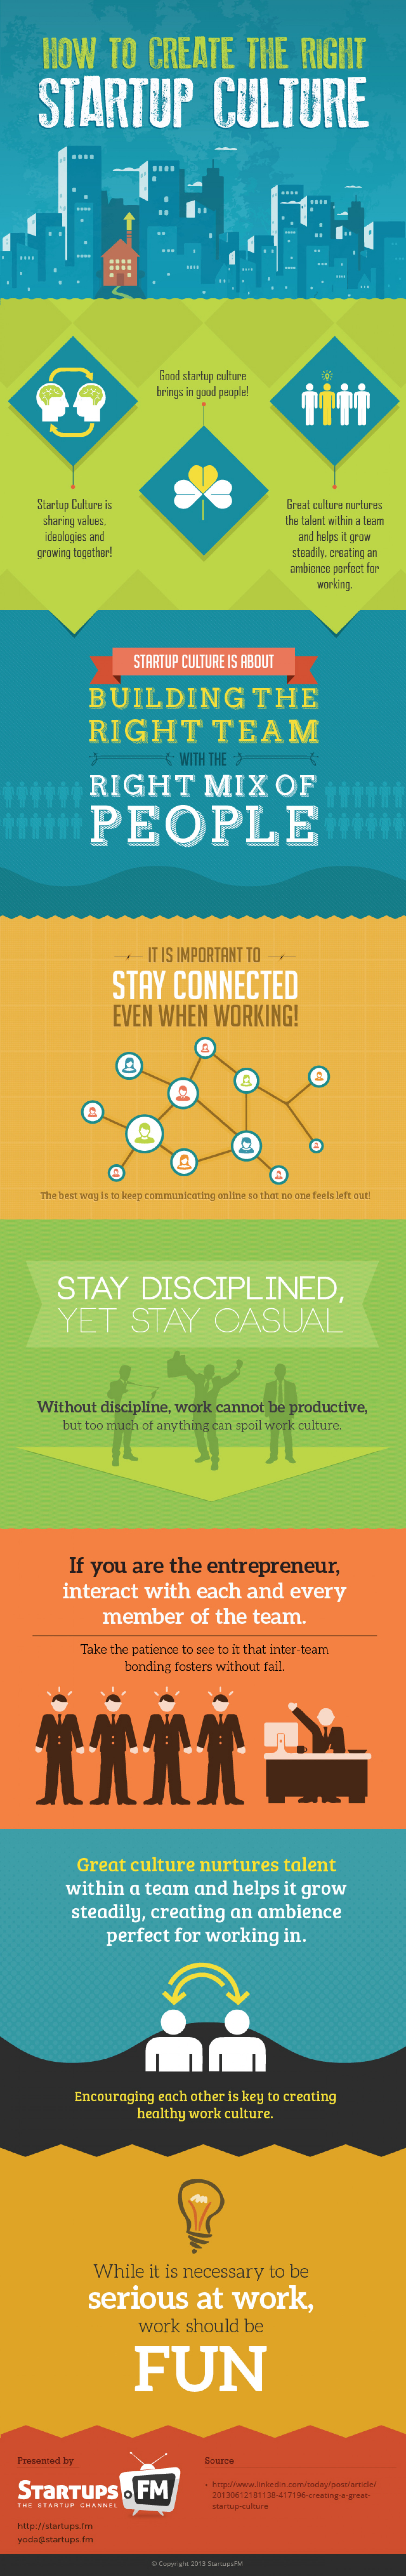 How to create the right startup culture? Infographic